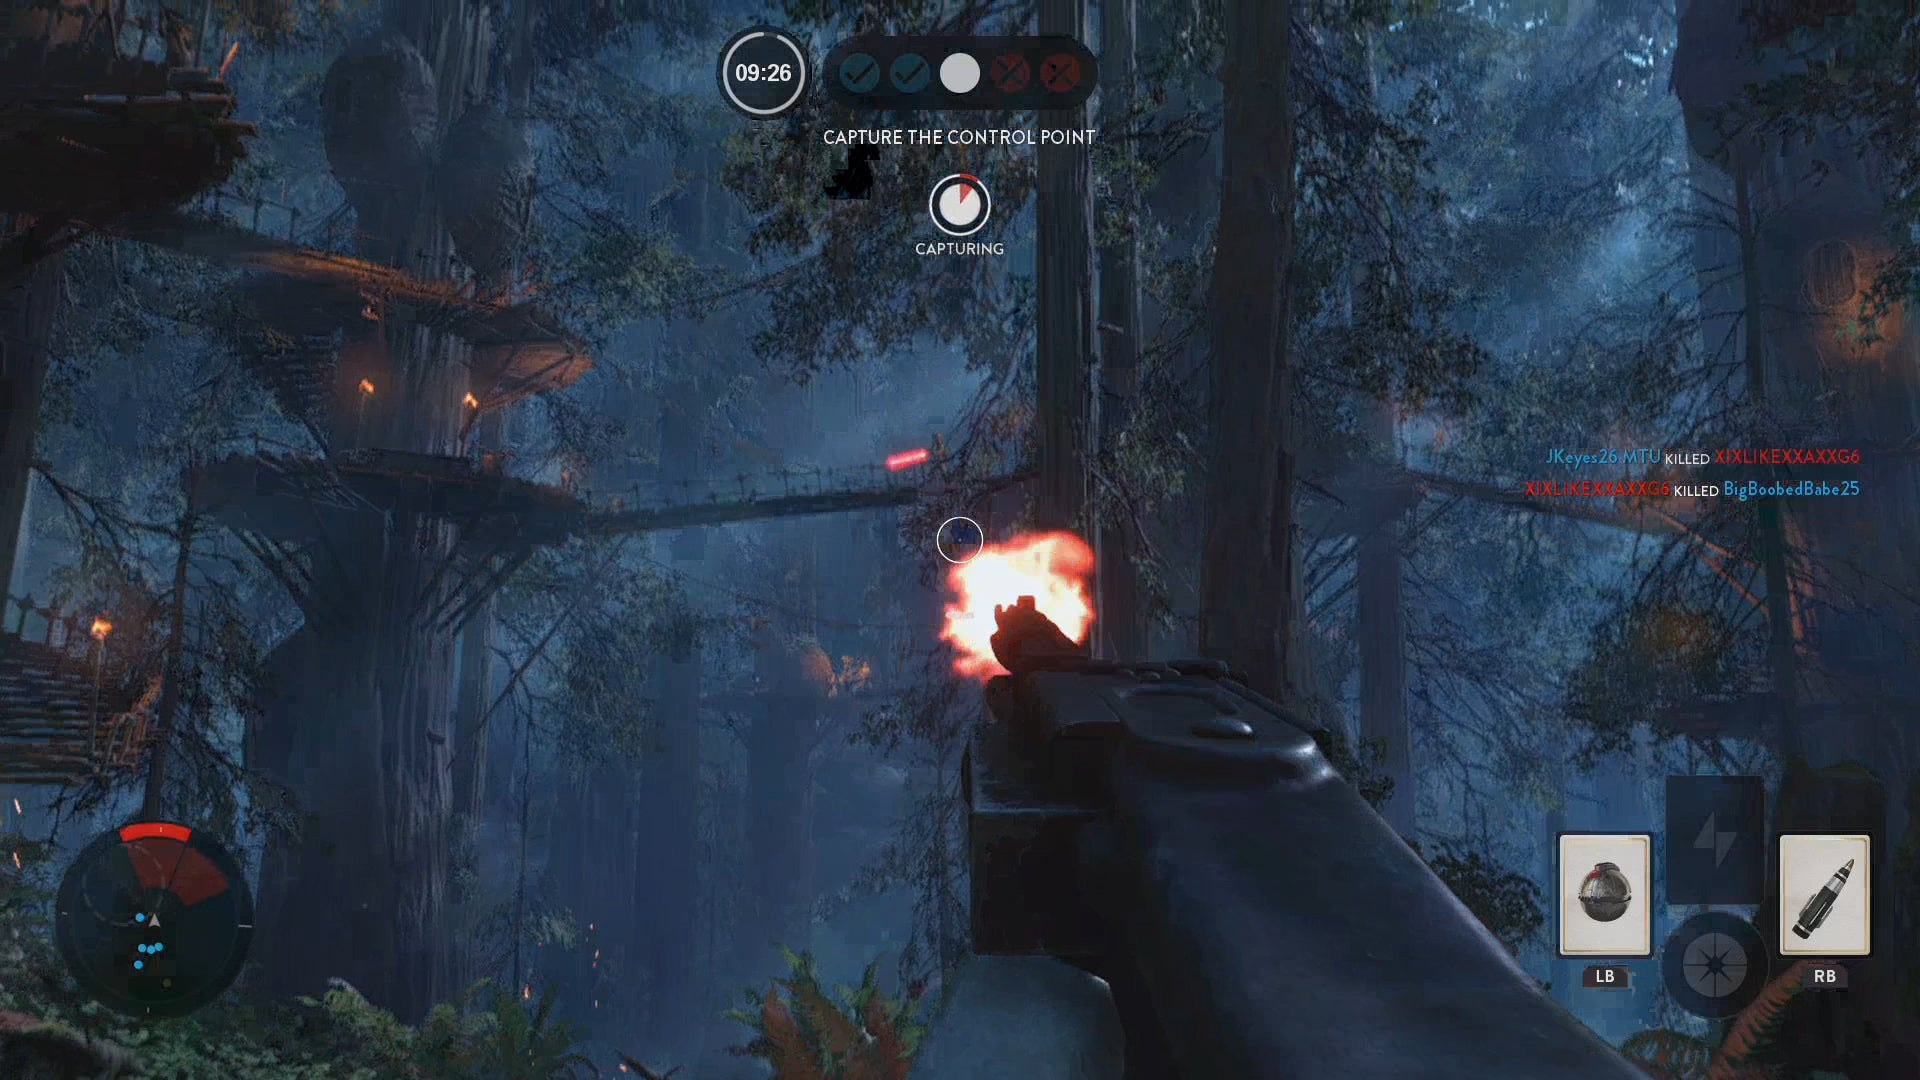 Star Wars: Battlefront Helped Me Understand How The Empire Lost On Endor